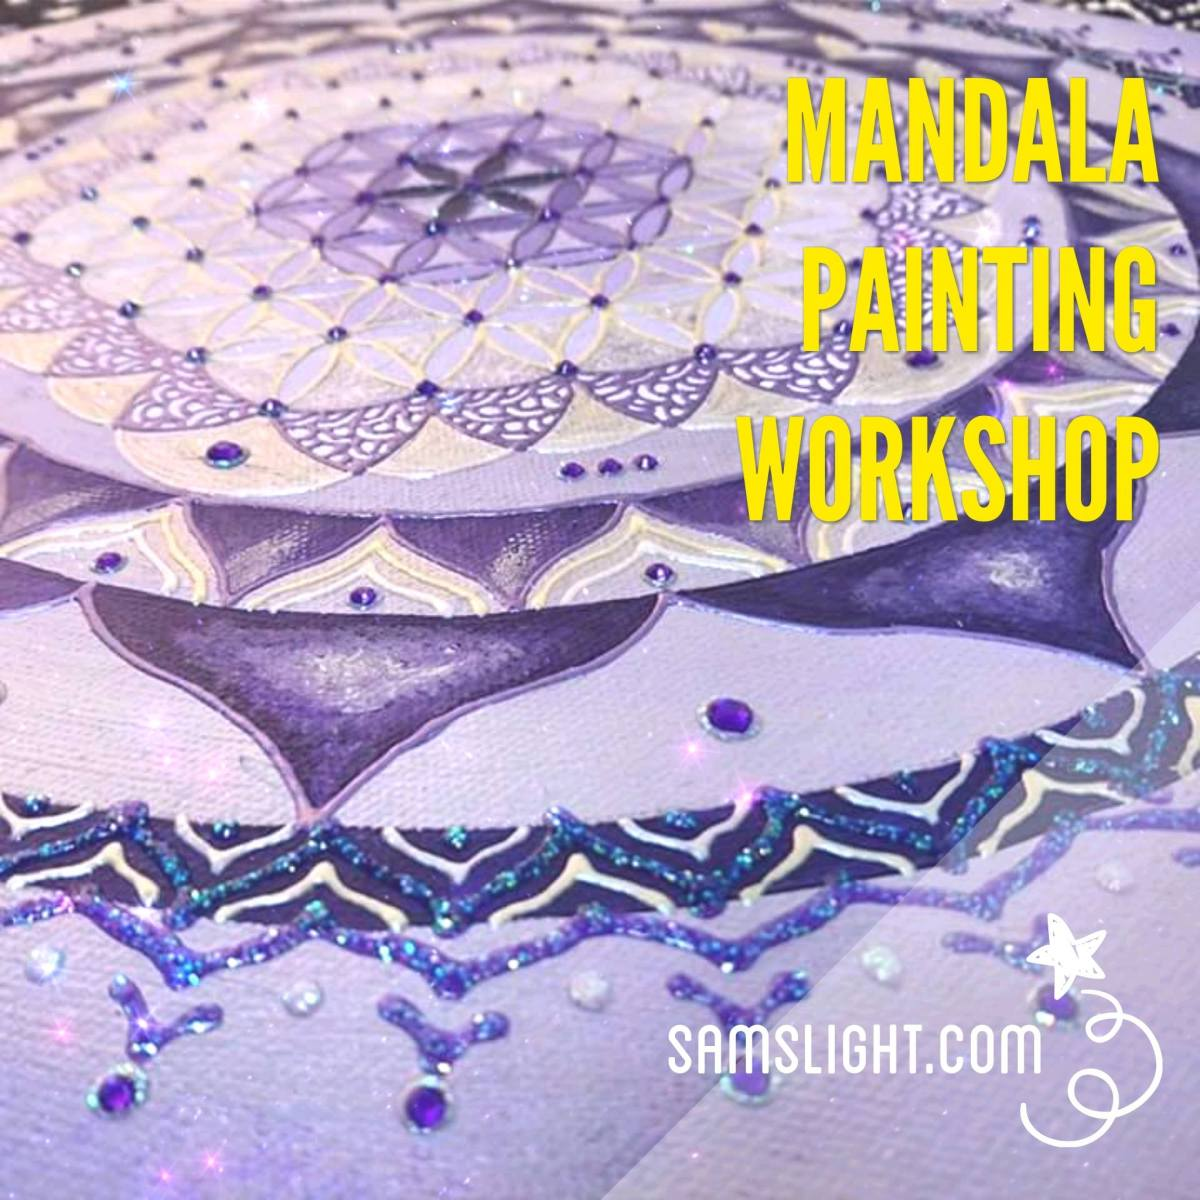 Mandala Art Jamming Workshop 曼陀羅自由繪畫班